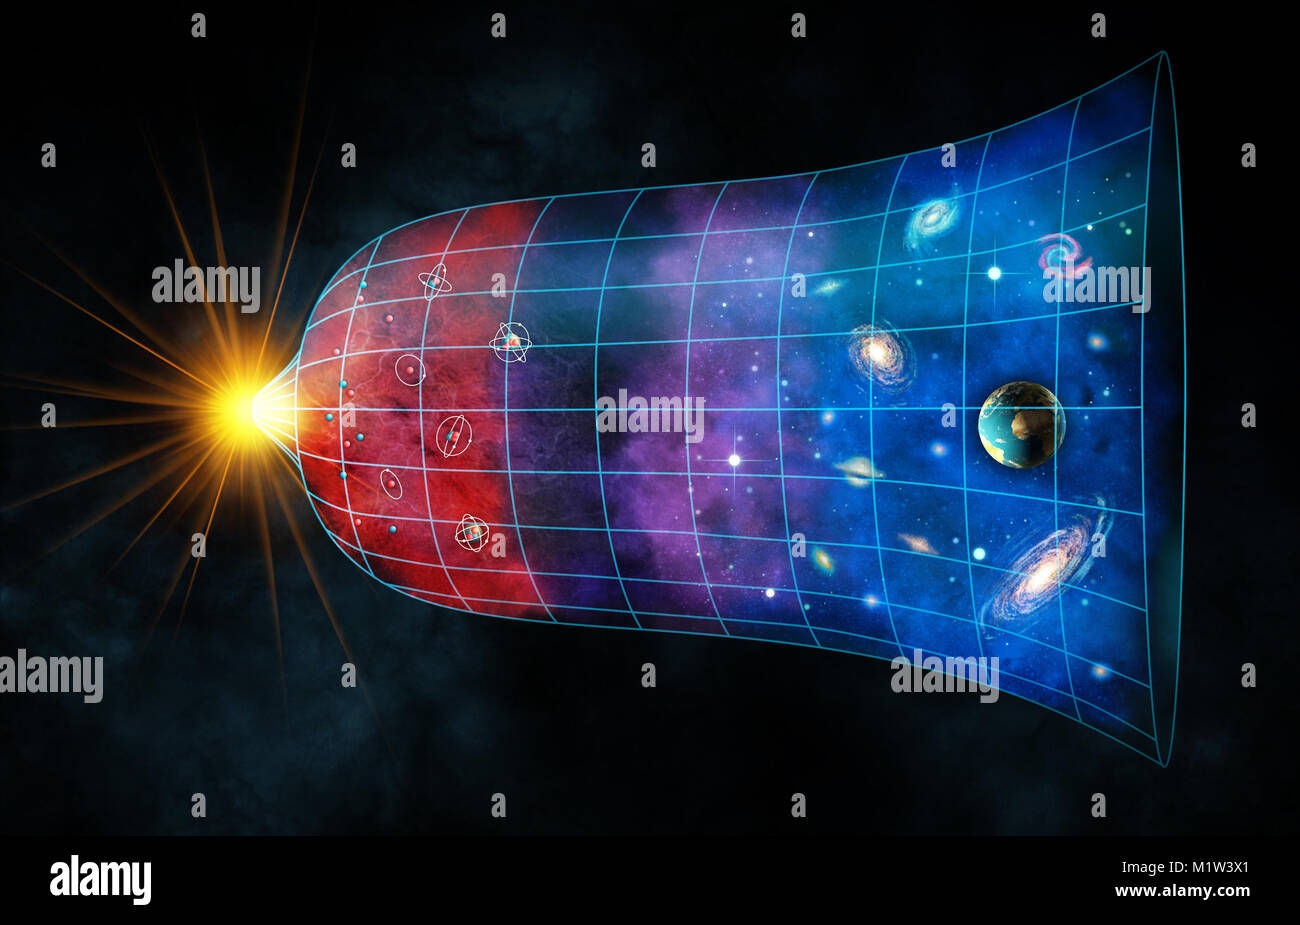 Logica si intuitia  - Pagina 5 The-expansion-of-the-universe-from-the-big-bang-to-the-present-digital-M1W3X1